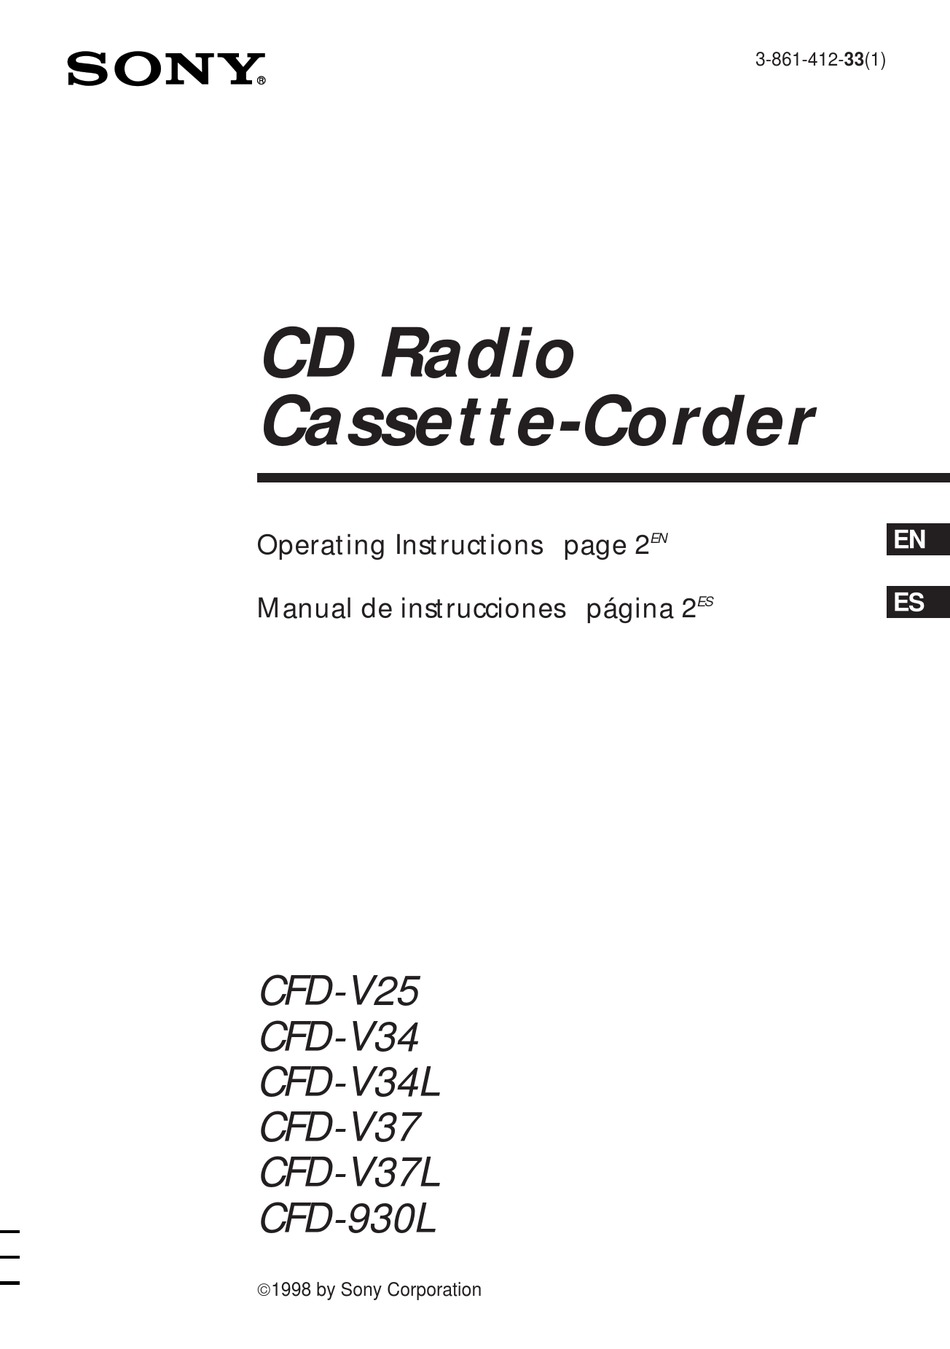 SONY CFD-930L OPERATING INSTRUCTIONS MANUAL Pdf Download